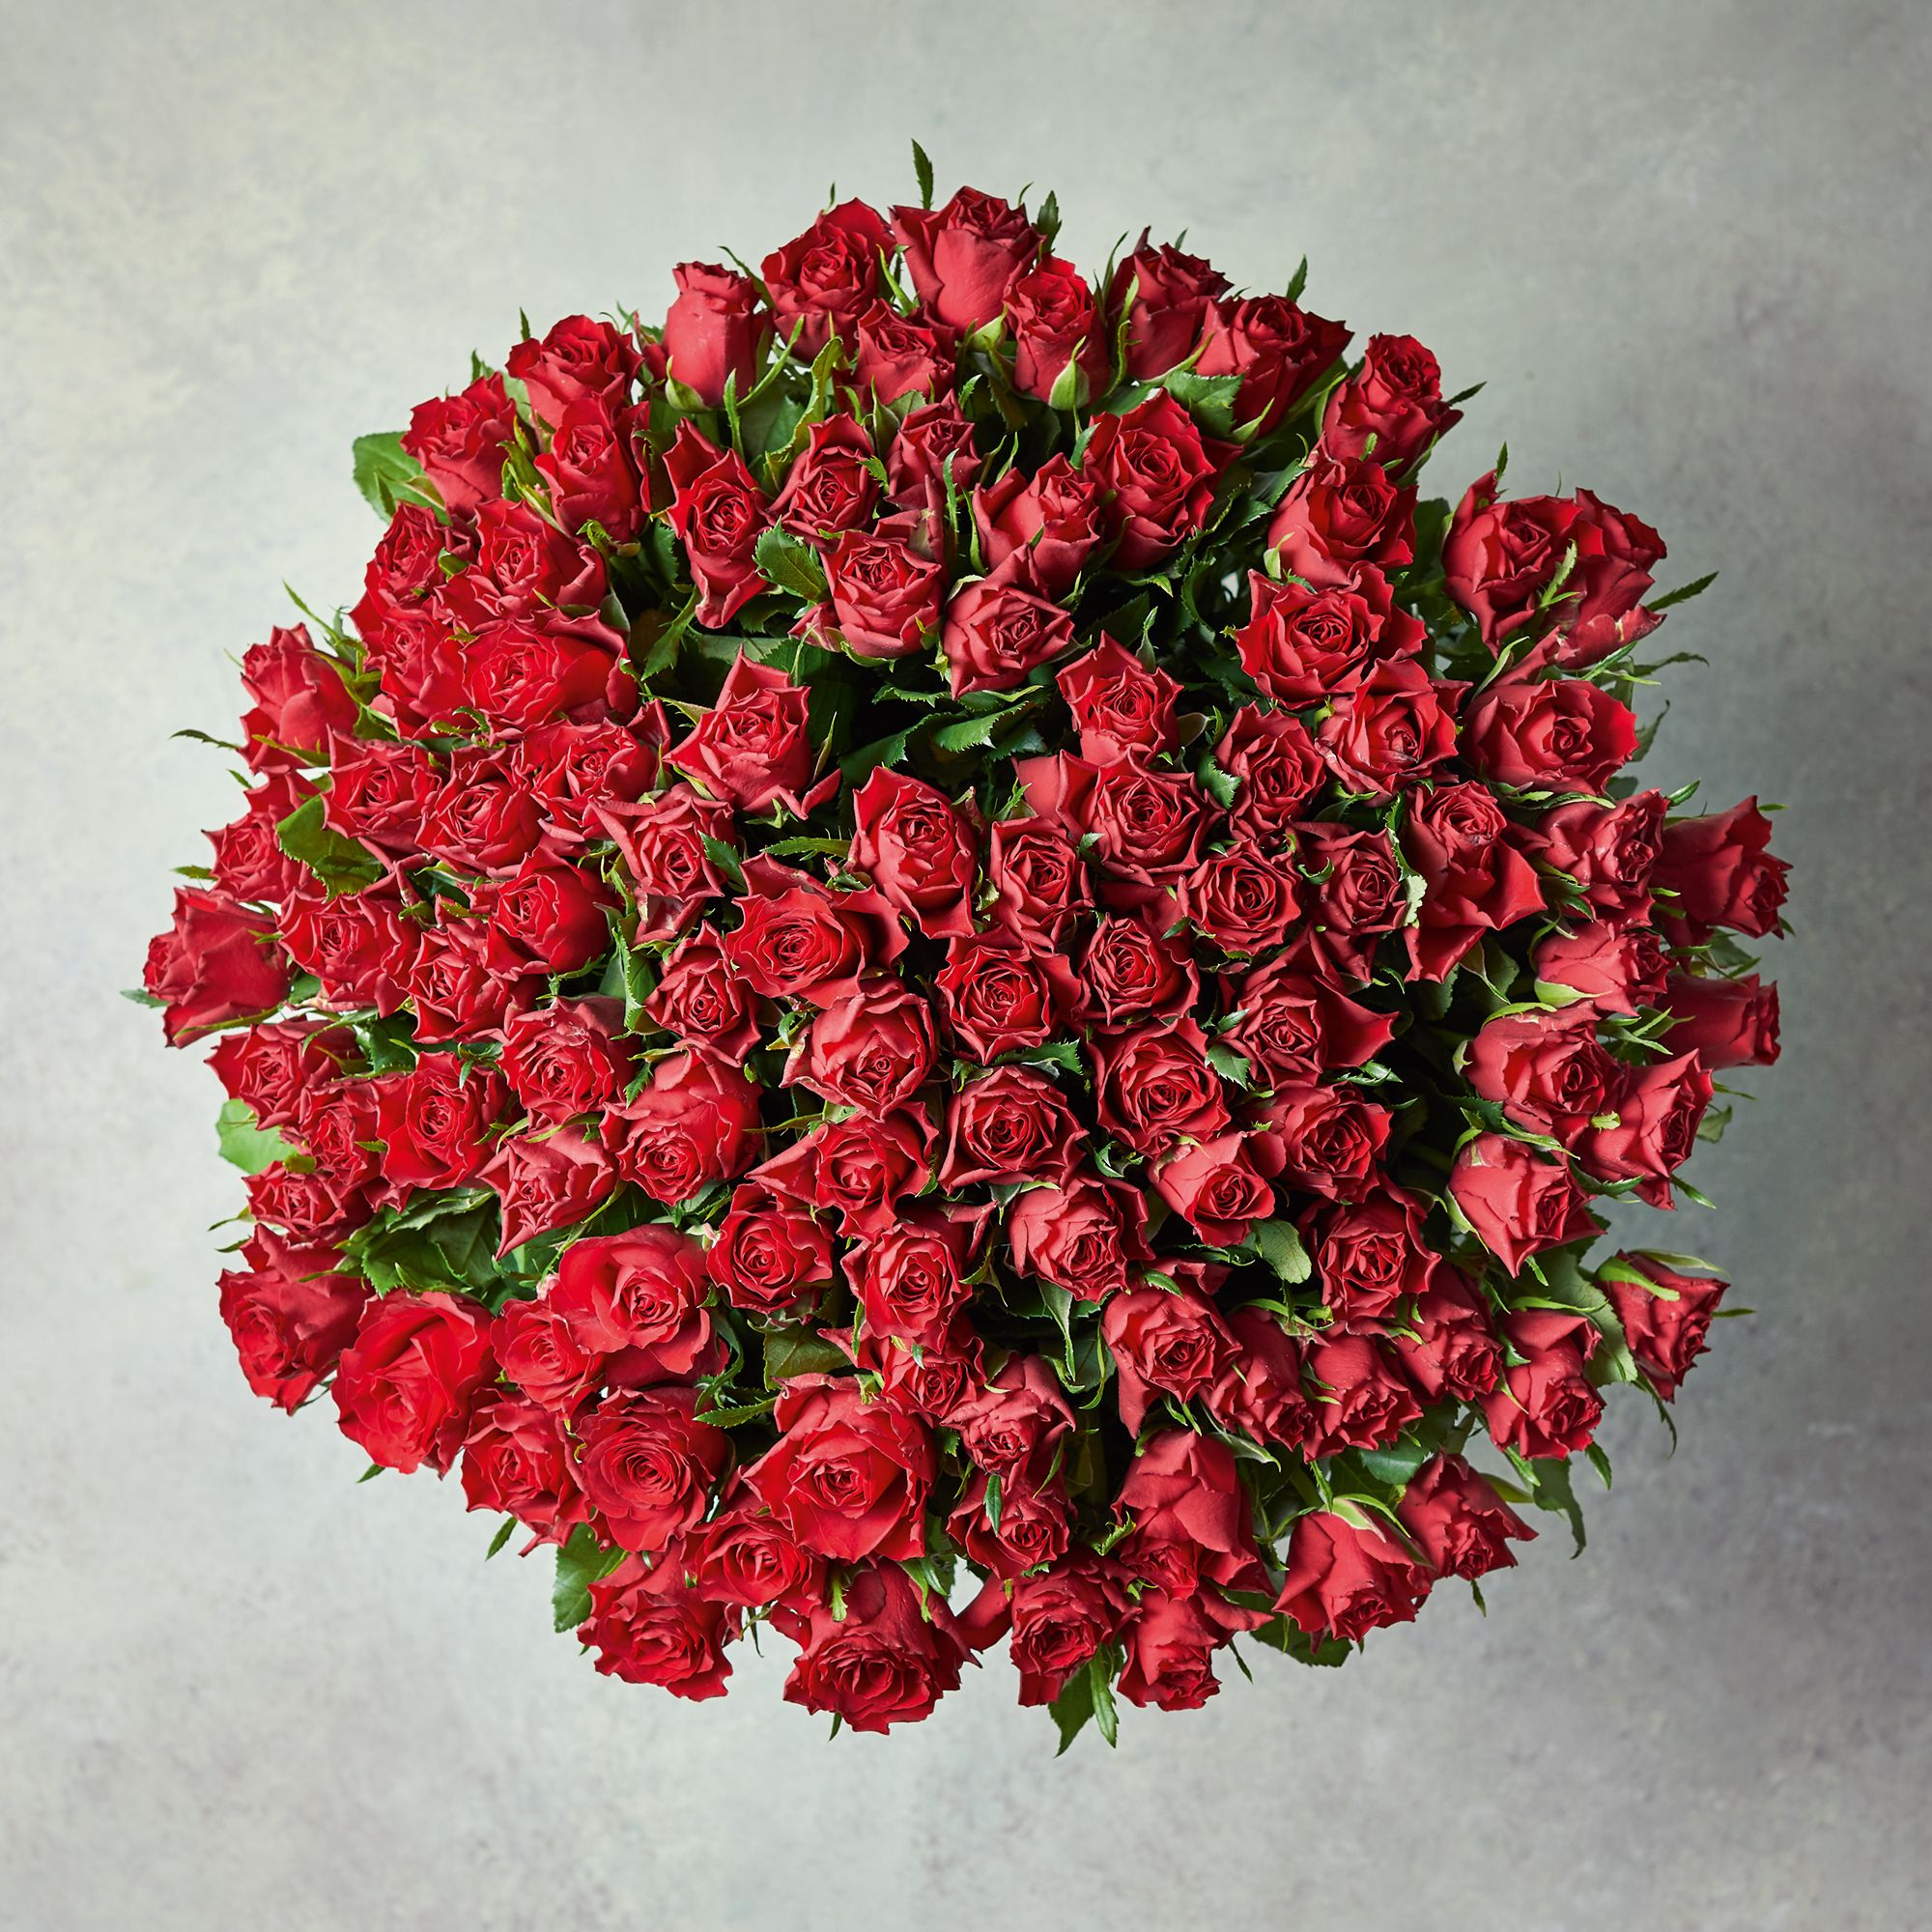 Image of 100 Sweetheart Roses - ready to arrange Red